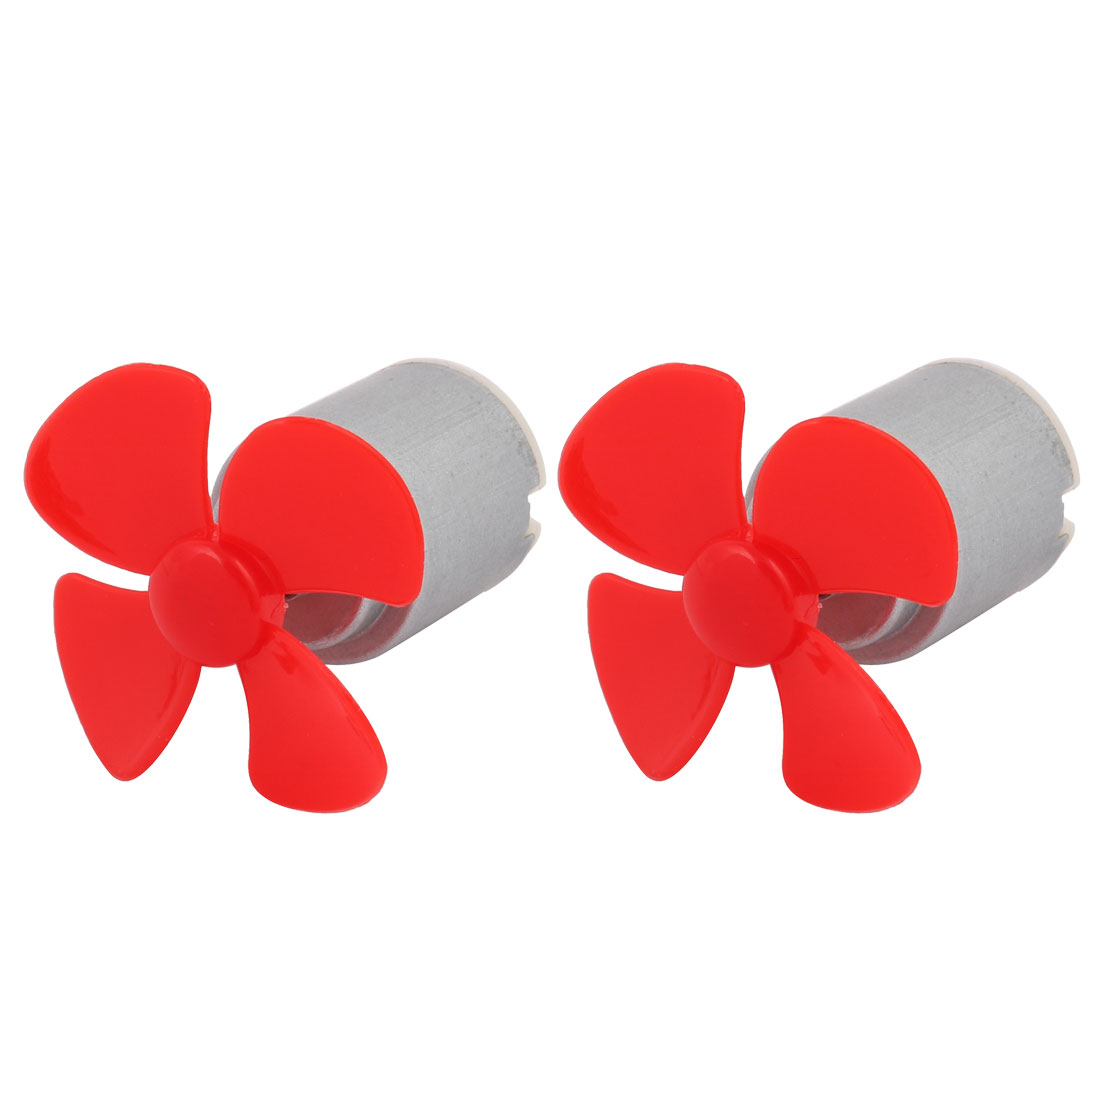 2pcs DC 3V 0.13A 11000RPM Strong Force Motor 4 Blades 40mm Red Propeller for RC Aircraft